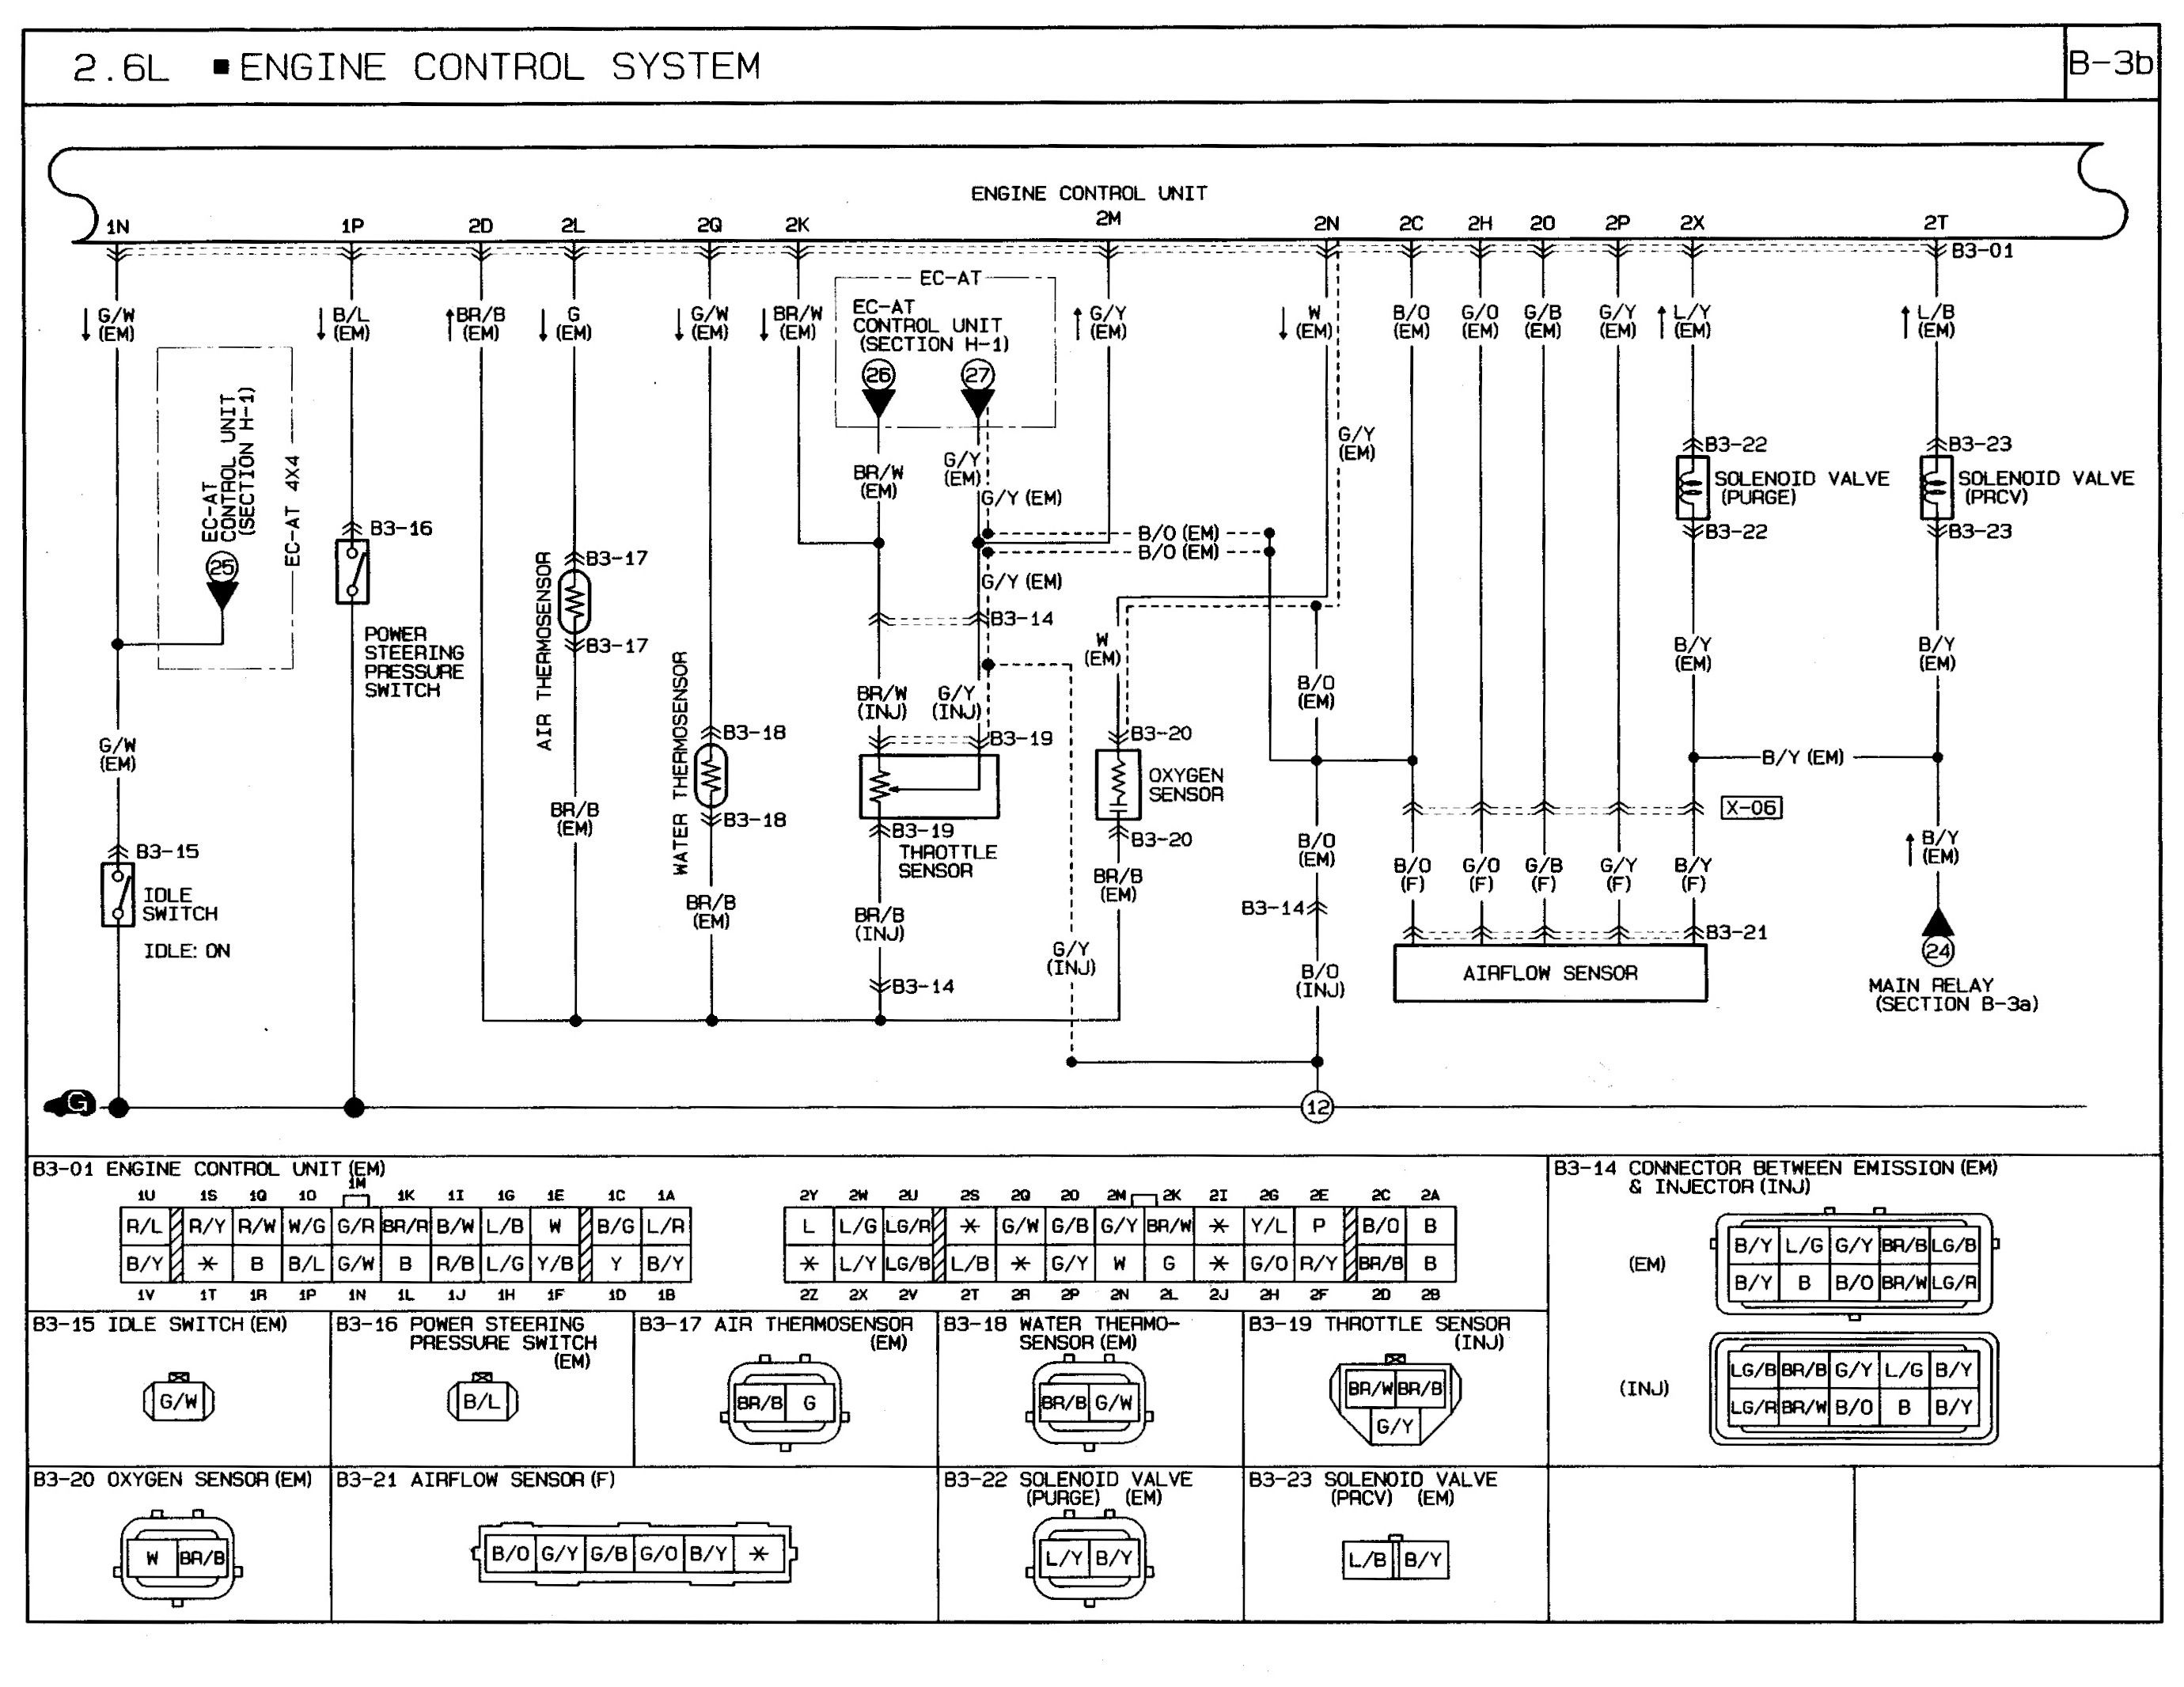 1991 Mazda B2600i Engine Control Wiring Diagram In 2020 Engine Control Unit Electrical Schematic Symbols Electrical Symbols